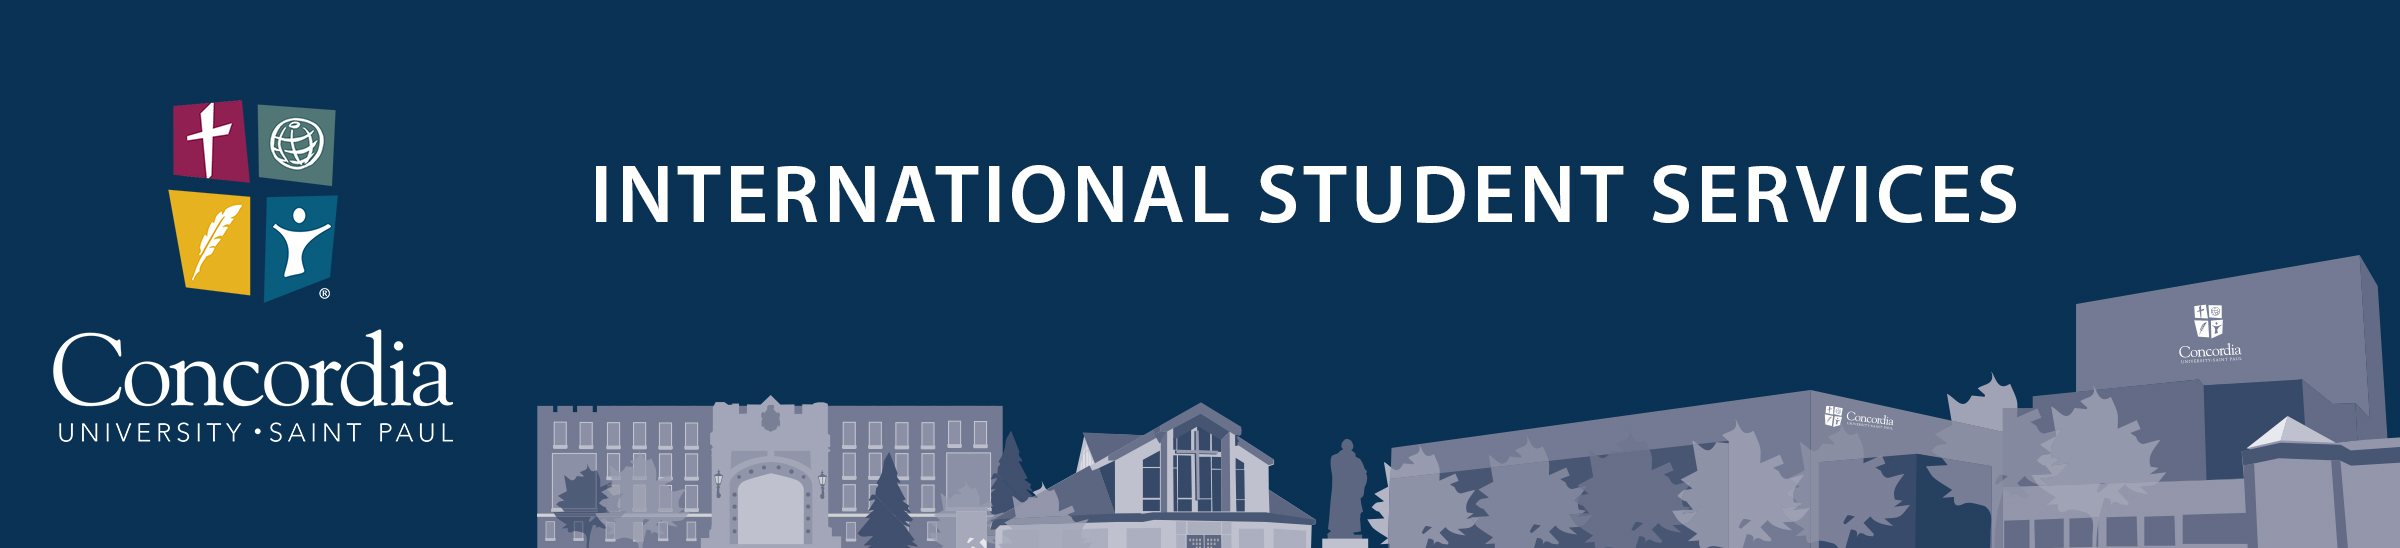 International Student Services - Concordia University, St. Paul